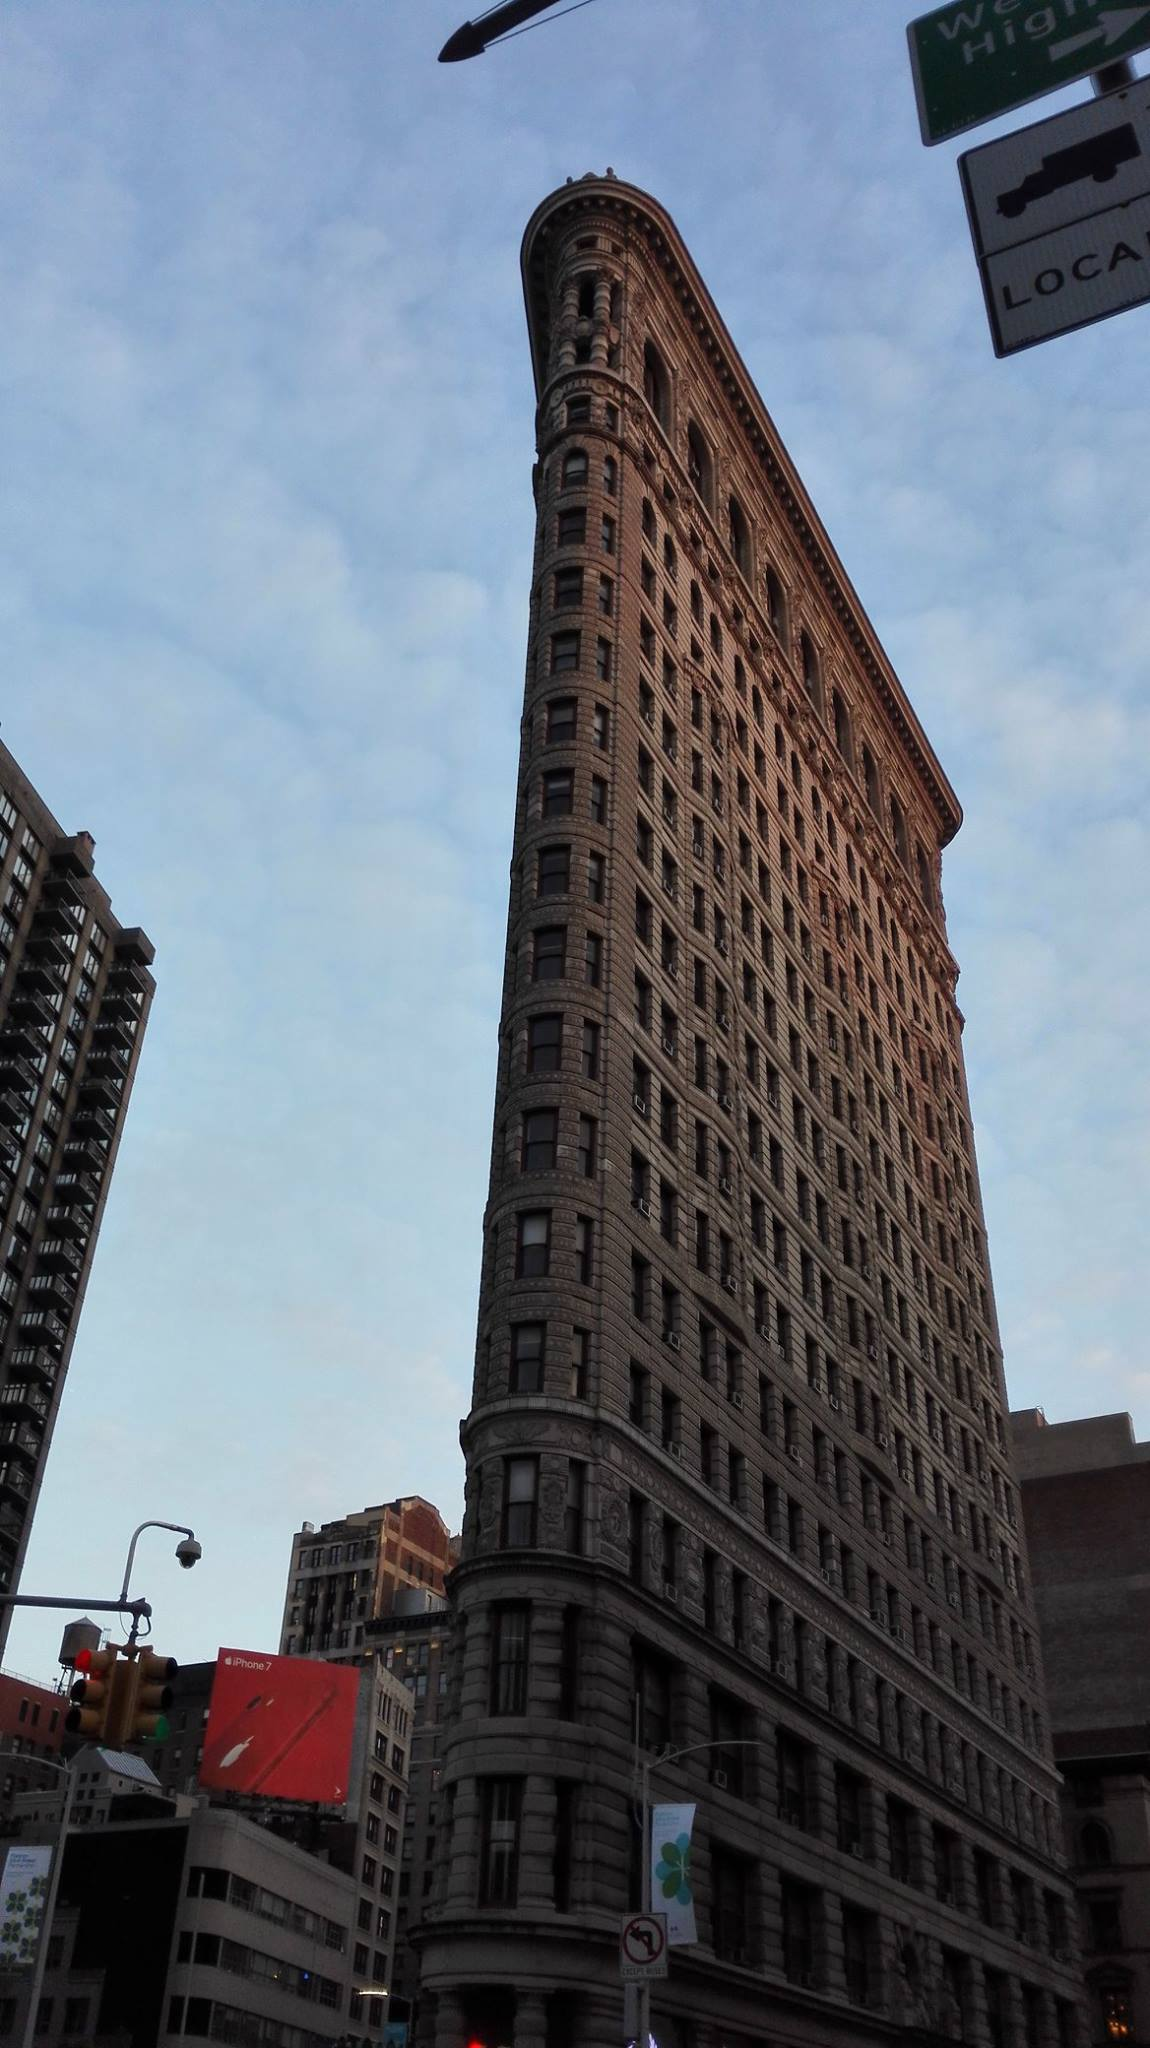 The 22-story Flatiron building